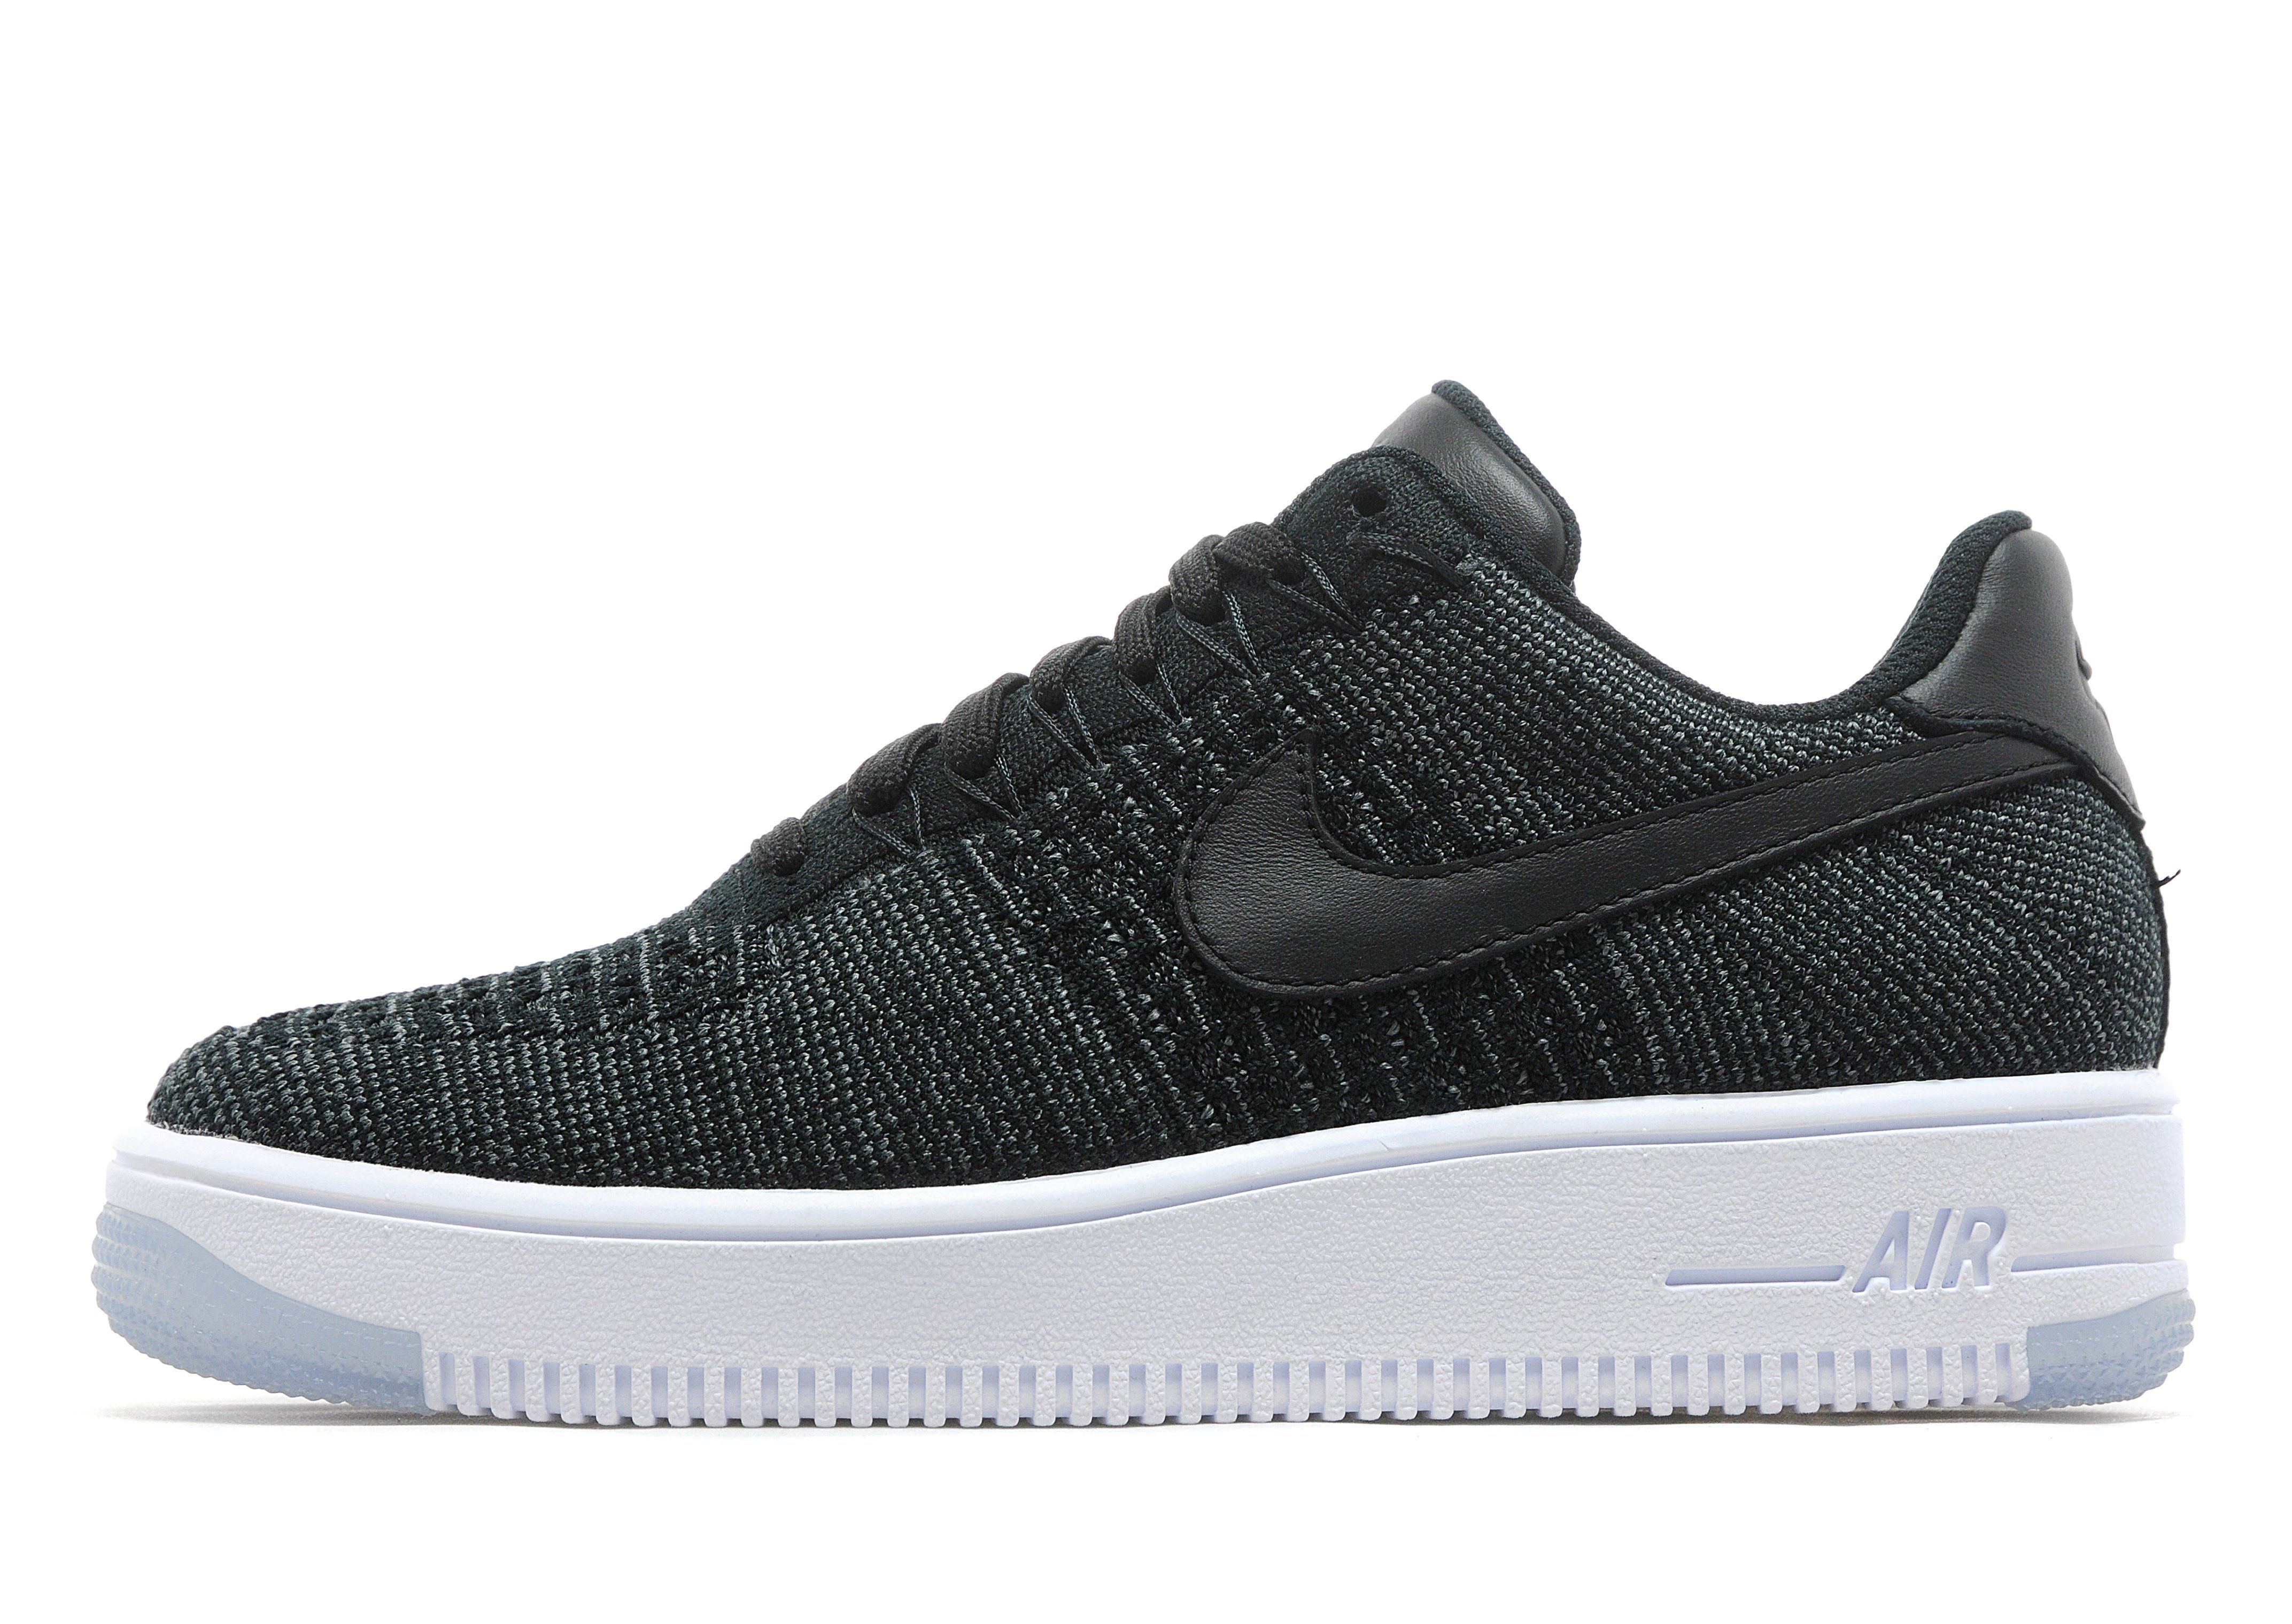 Nike Air Force 1 Flyknit Women's